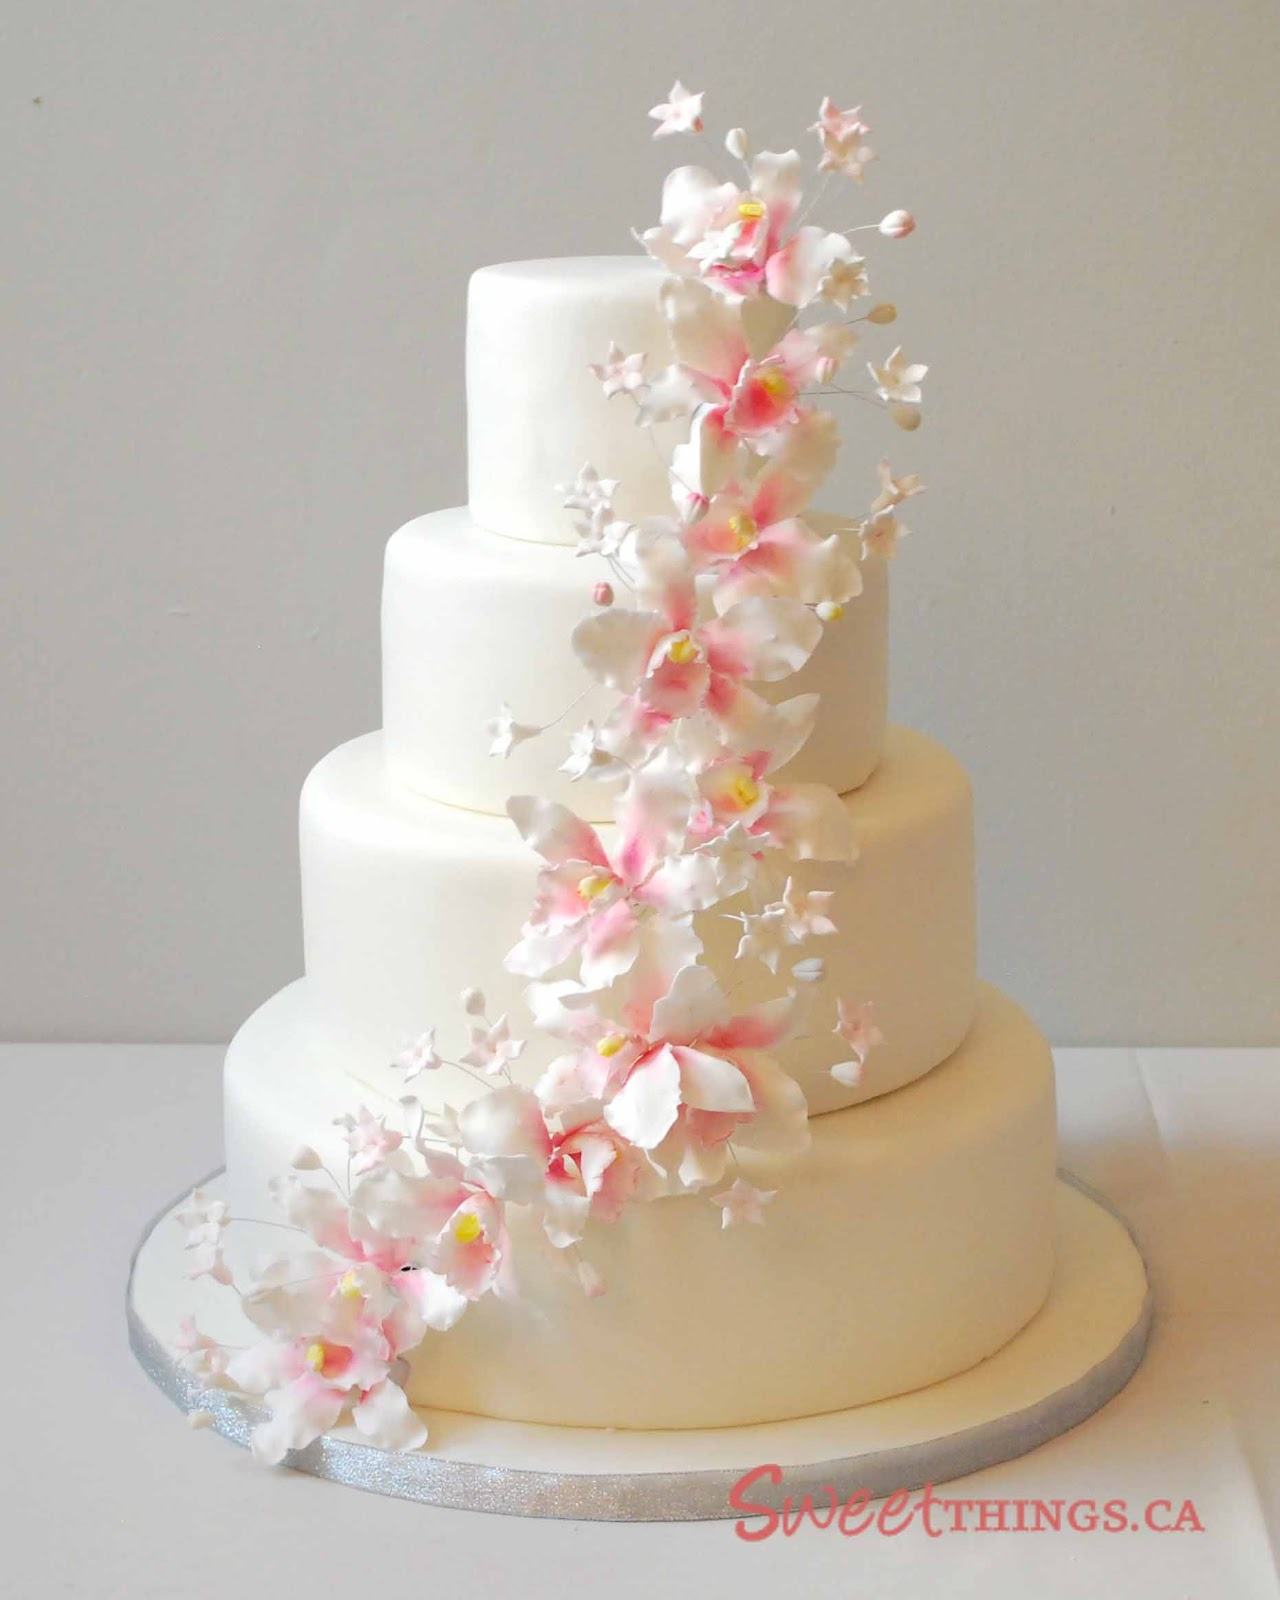 Cake Designs And Pictures : SweetThings: 4-tier Wedding Cake with Sugarpaste Orchids